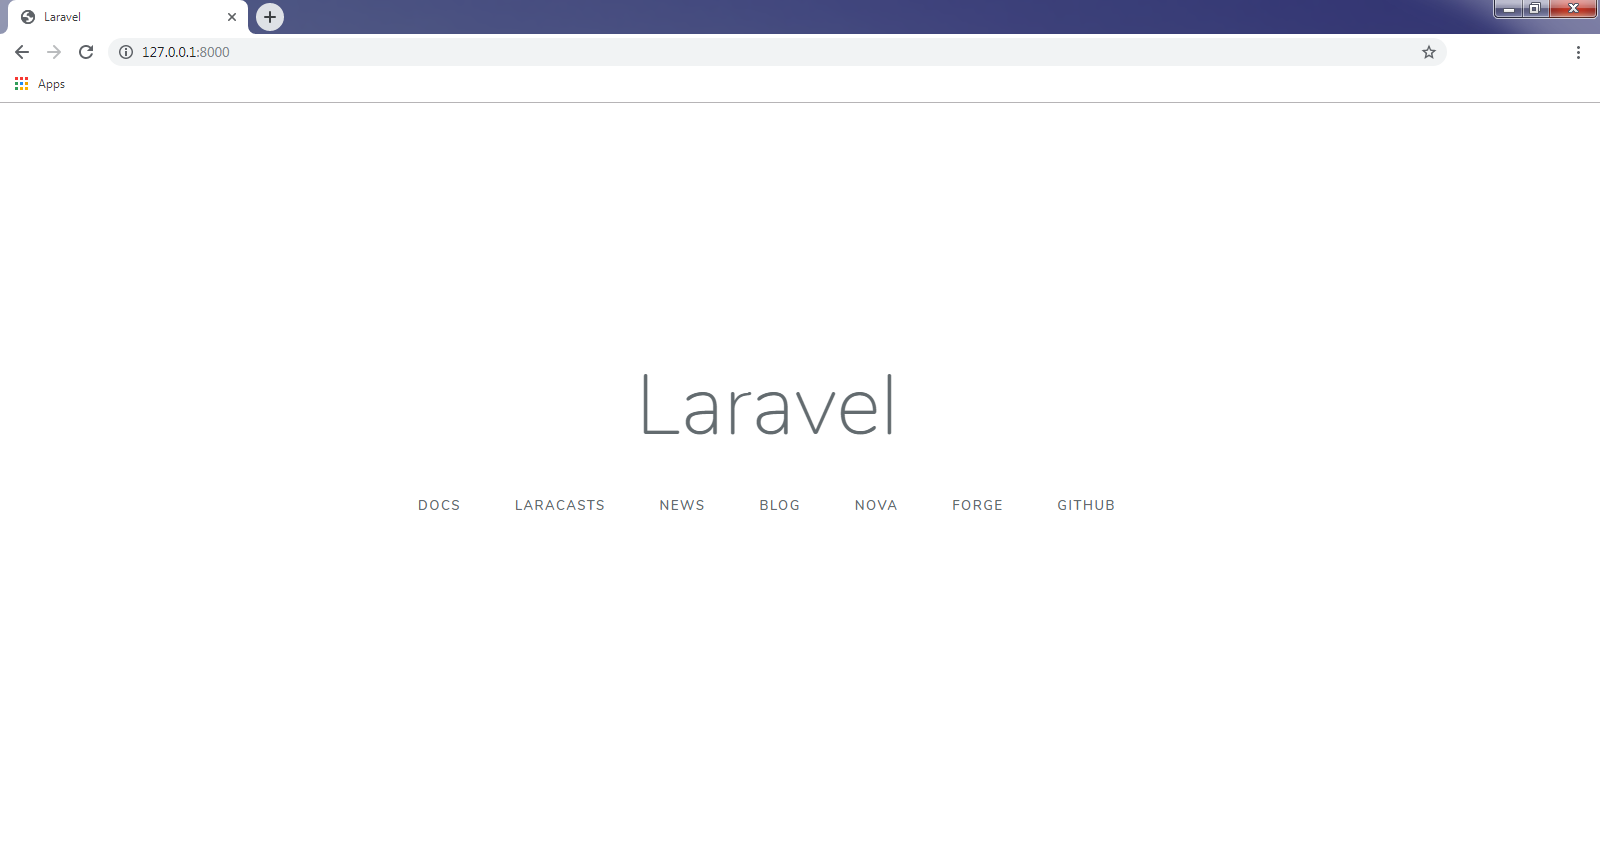 First look at laravel's introduction and interface